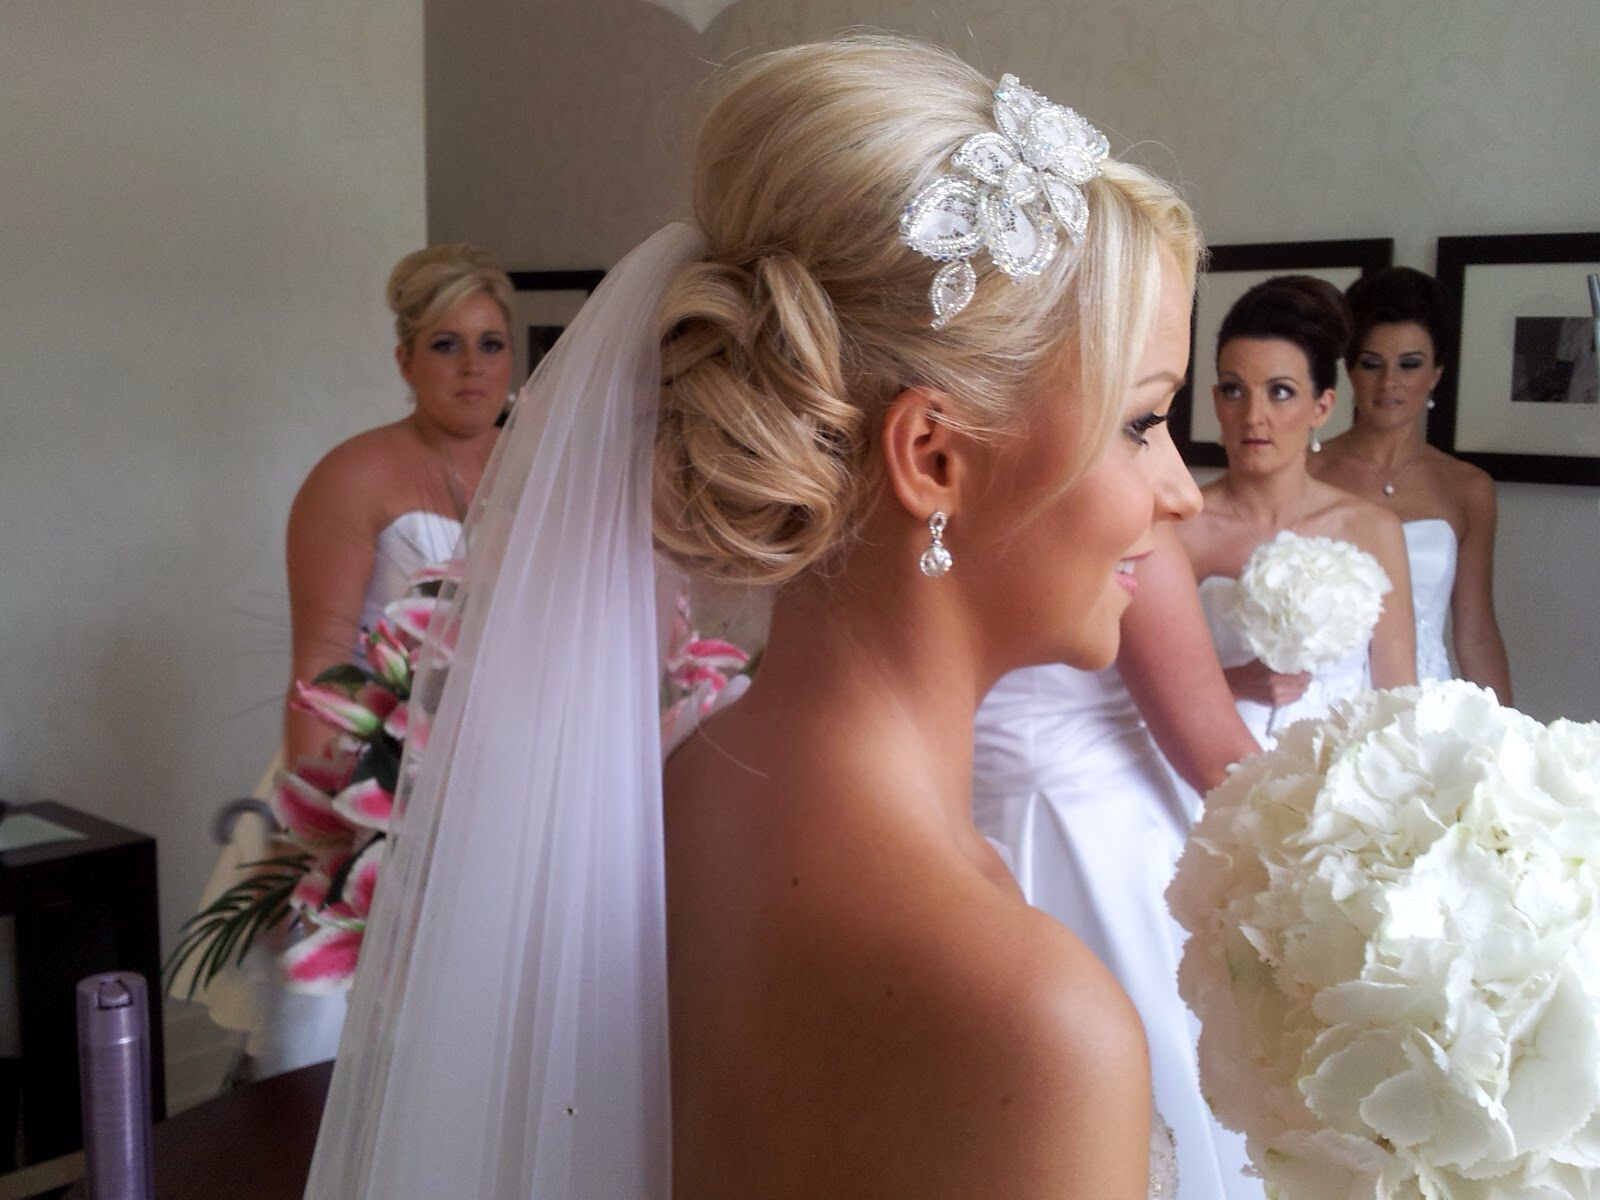 wedding hair - were you gonna have a veil? i thought an updo would